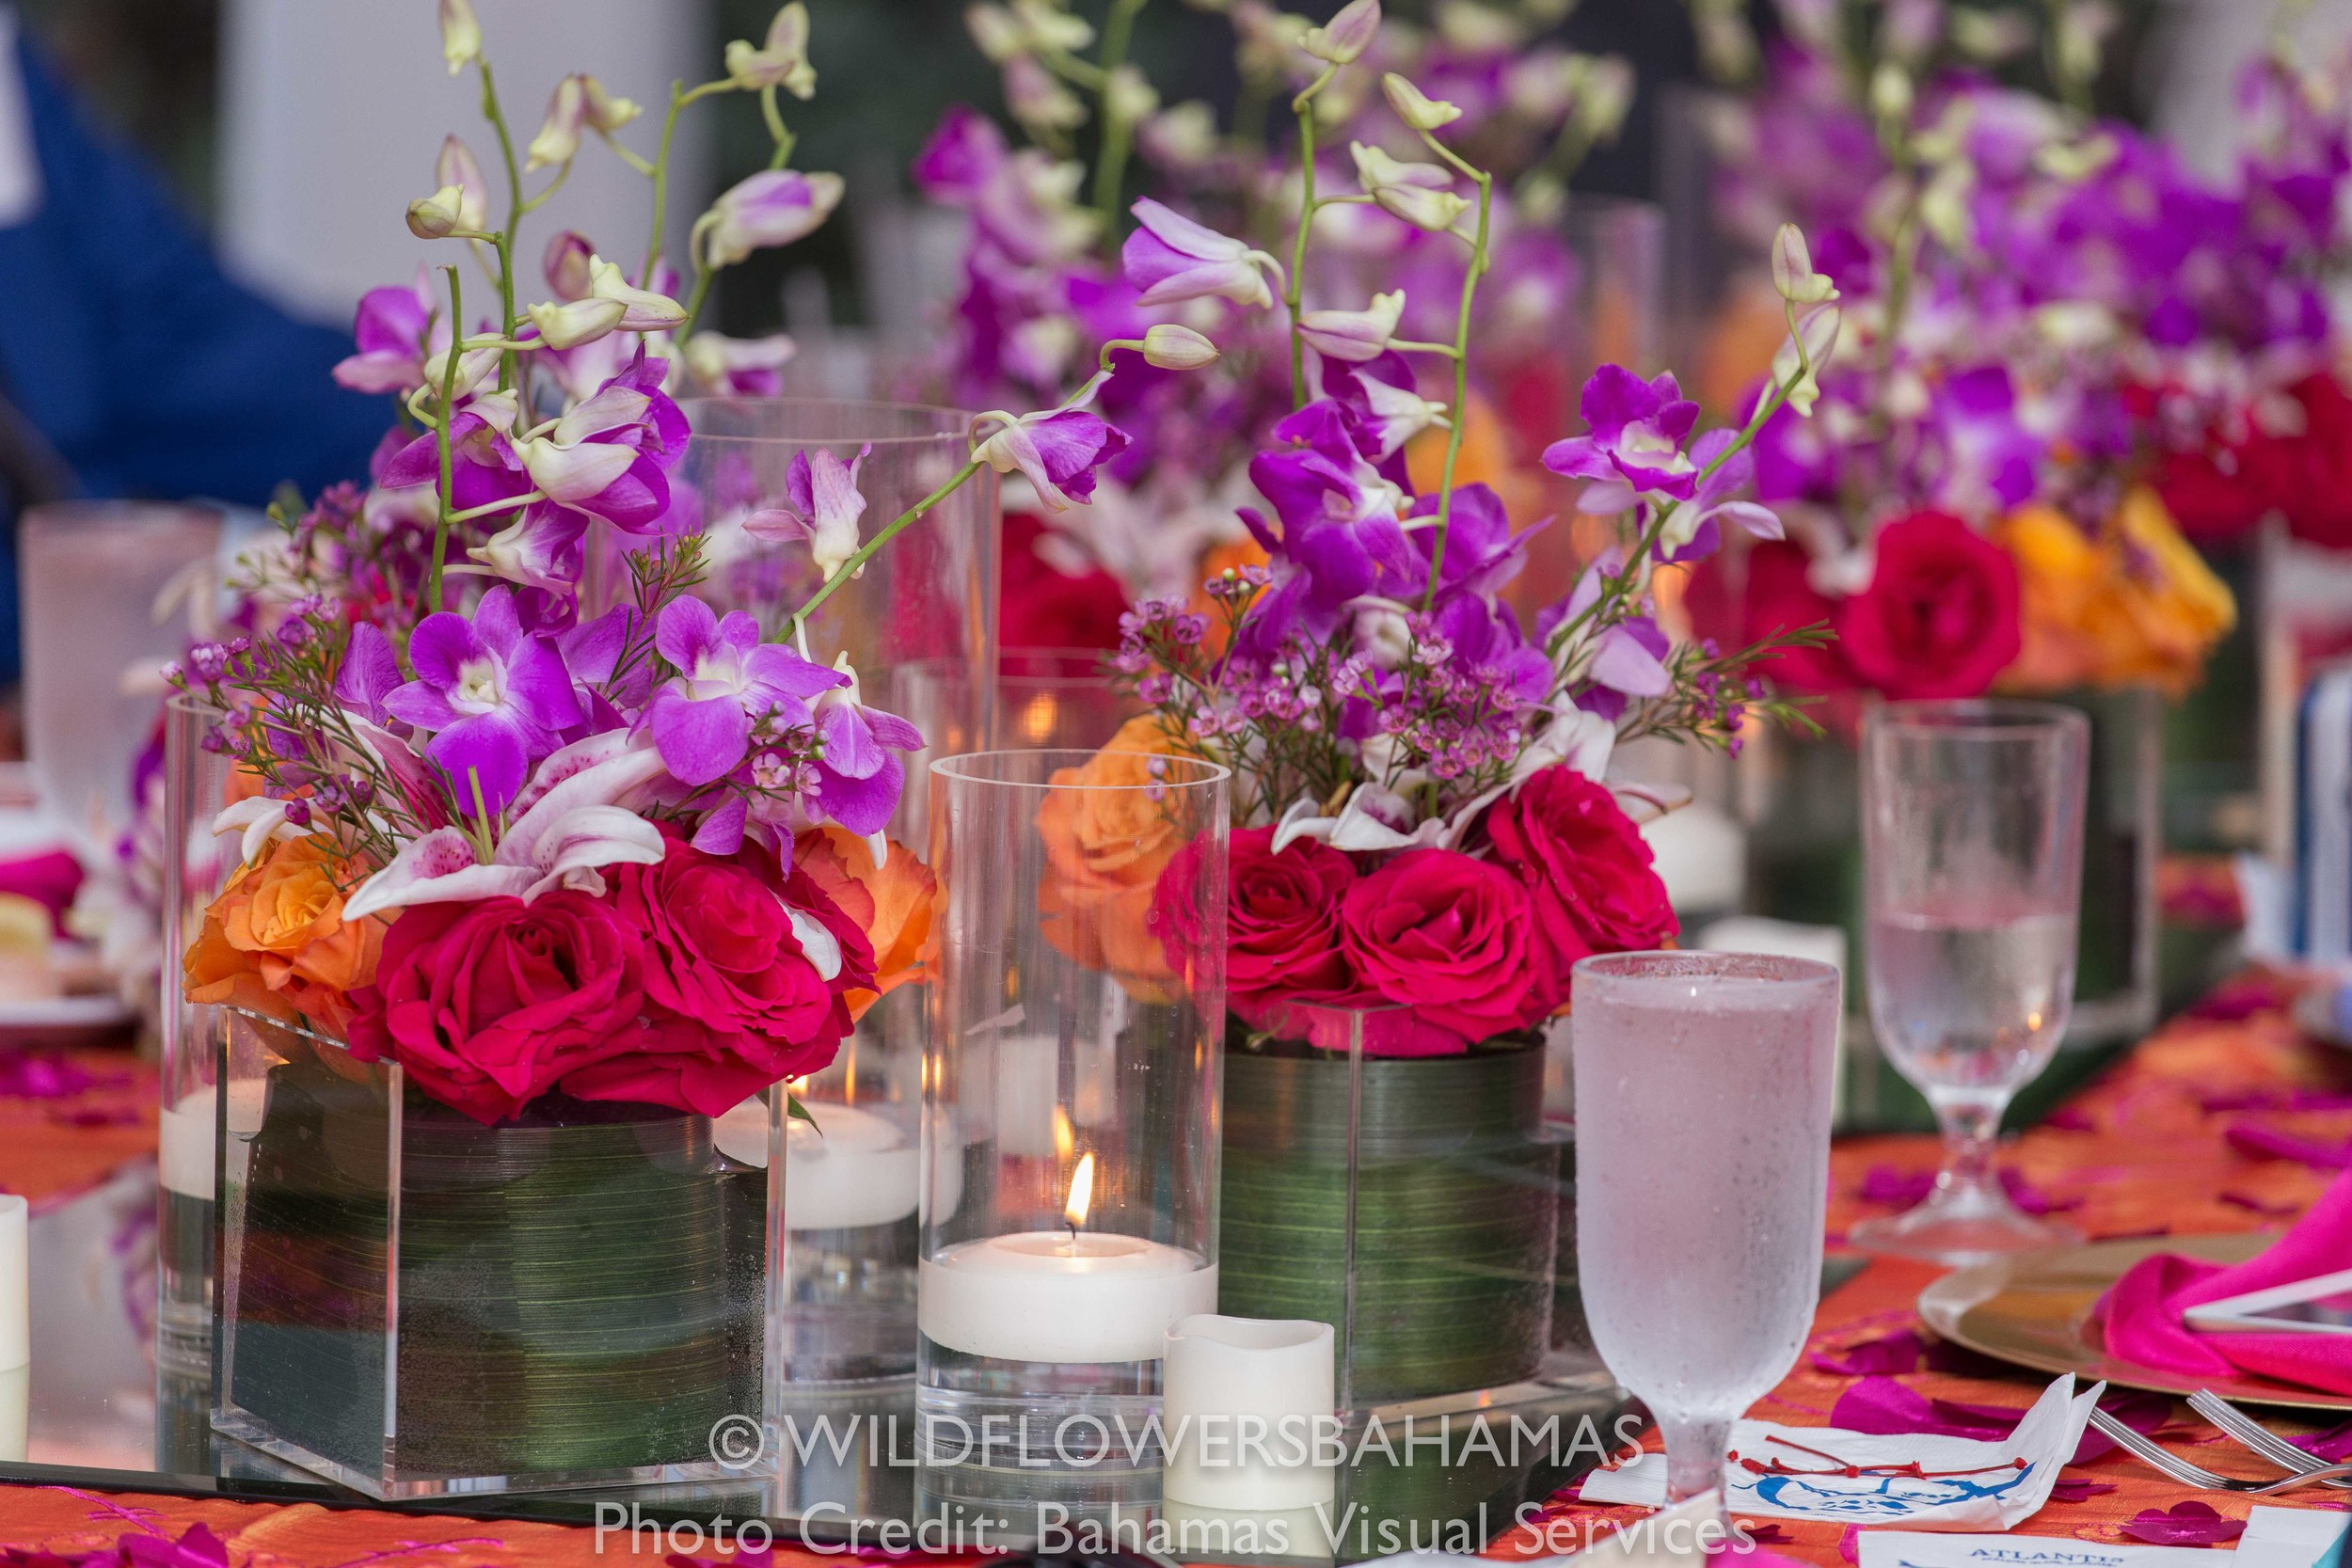 Wildflowers Events & Occasions Wedding